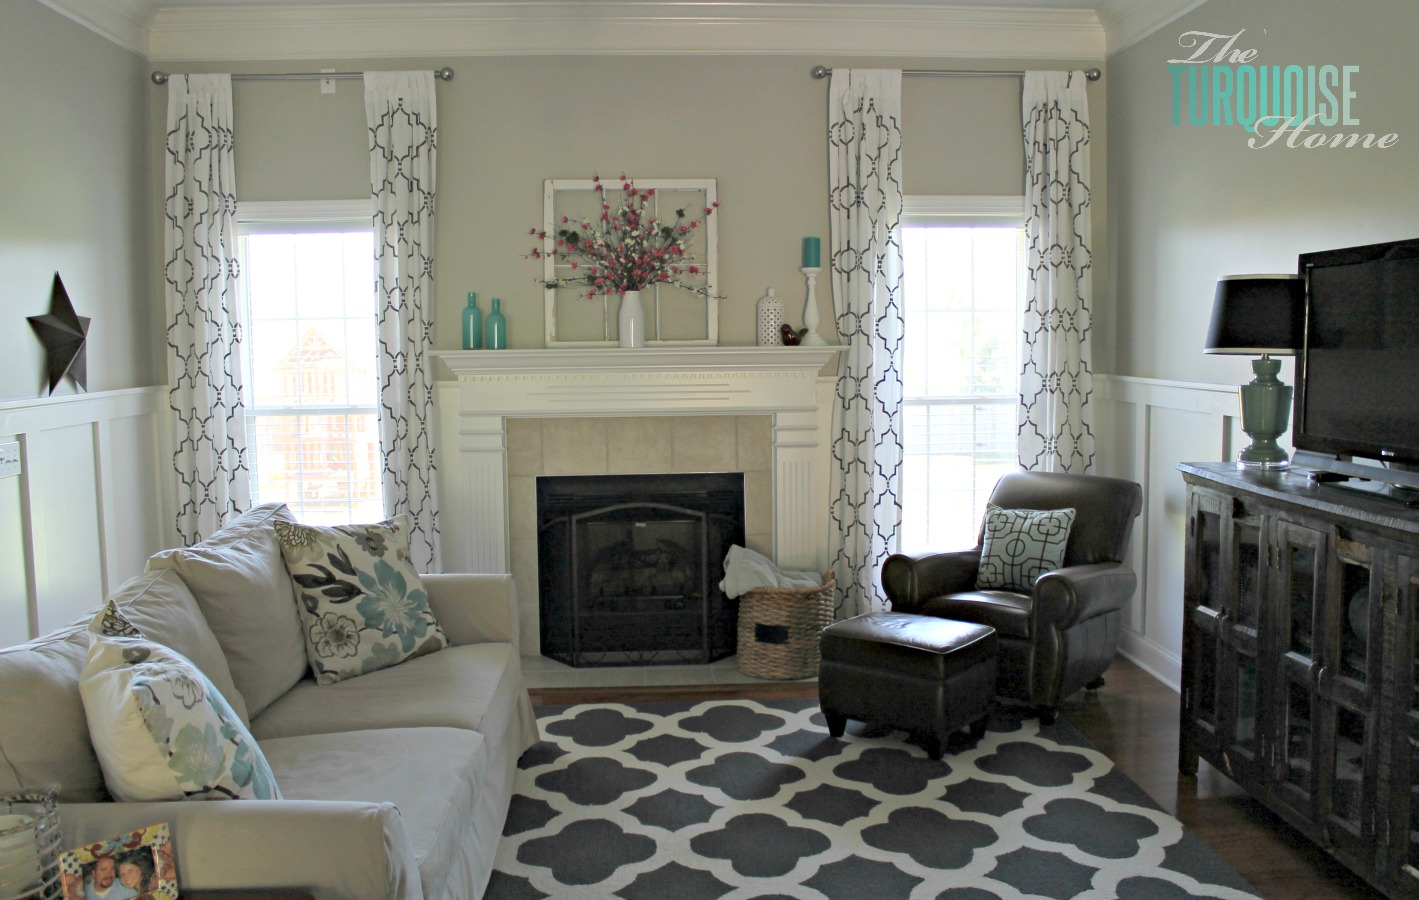 Diy Small Living Room Makeover Black Grey White Part 7 Final Reveal The Turquoise Home Gorgeous With Beautiful Board And Batten Pottery Barn Sofa Stenciled